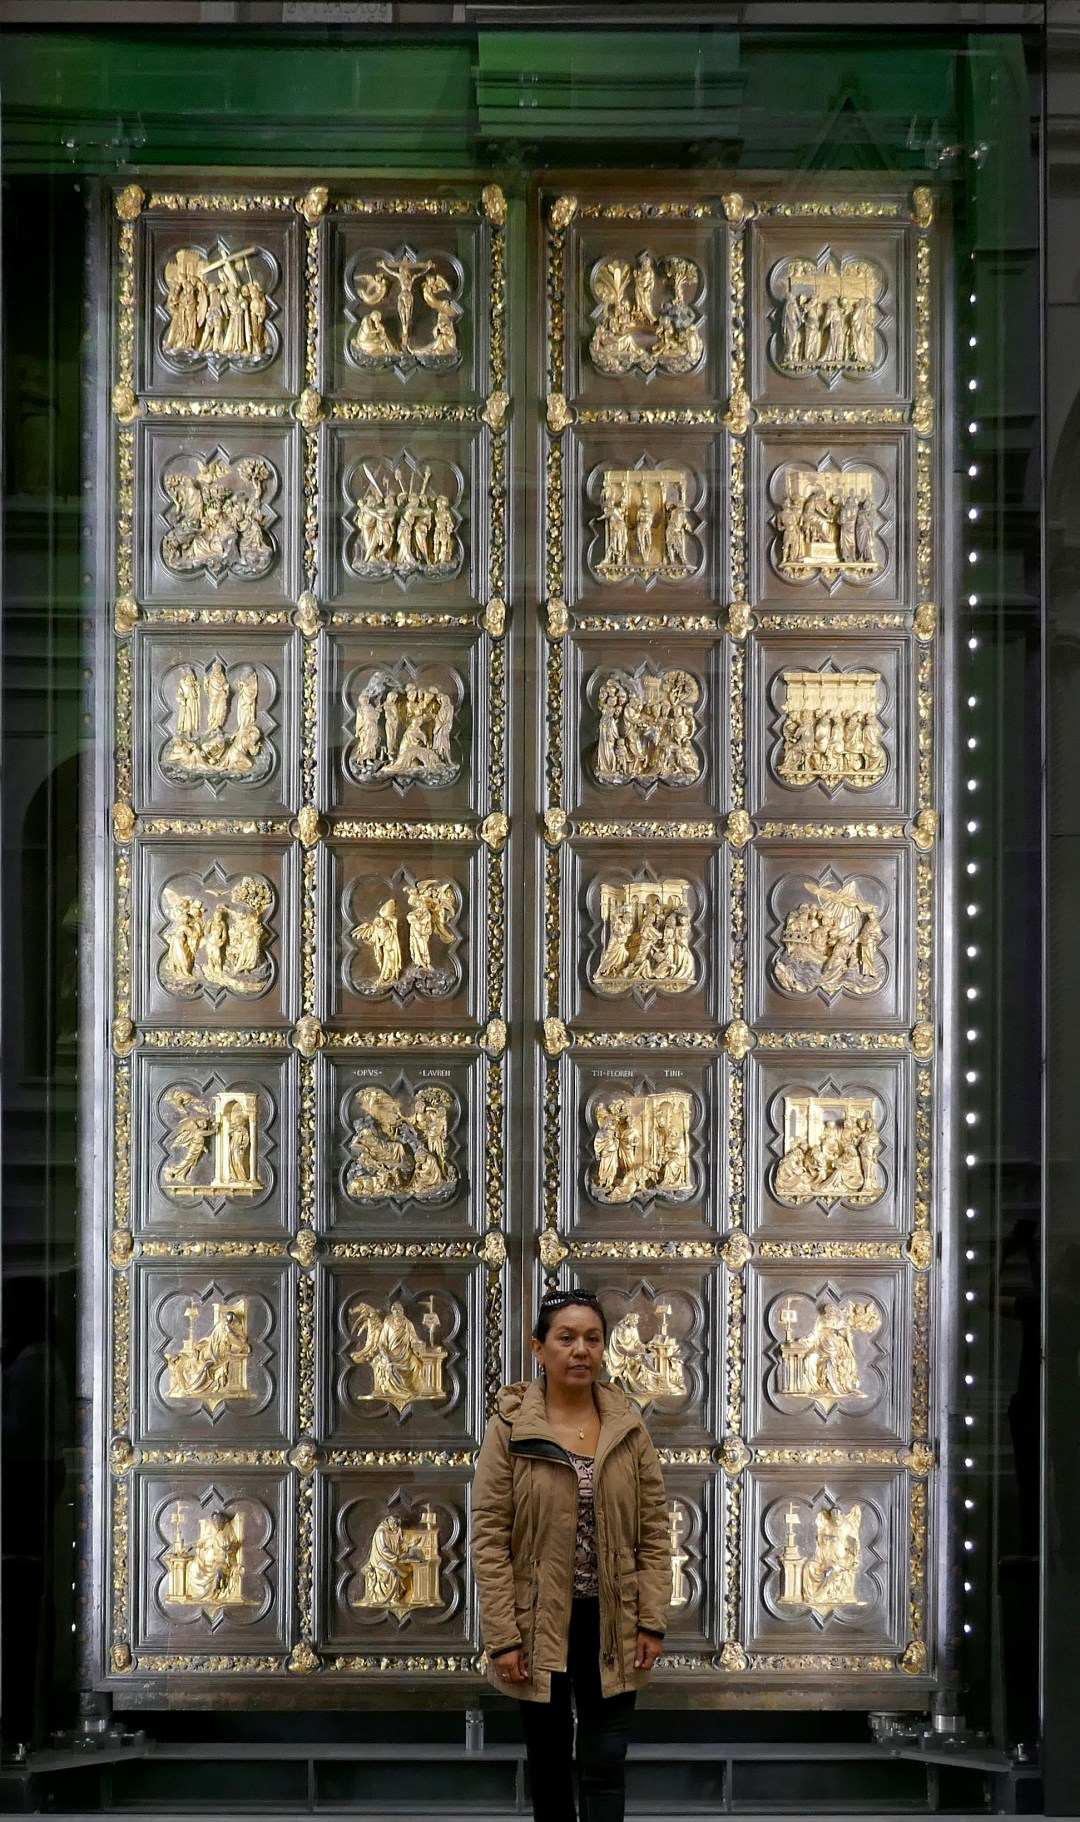 Ghiberti's First set of doors for the Florence Baptistery